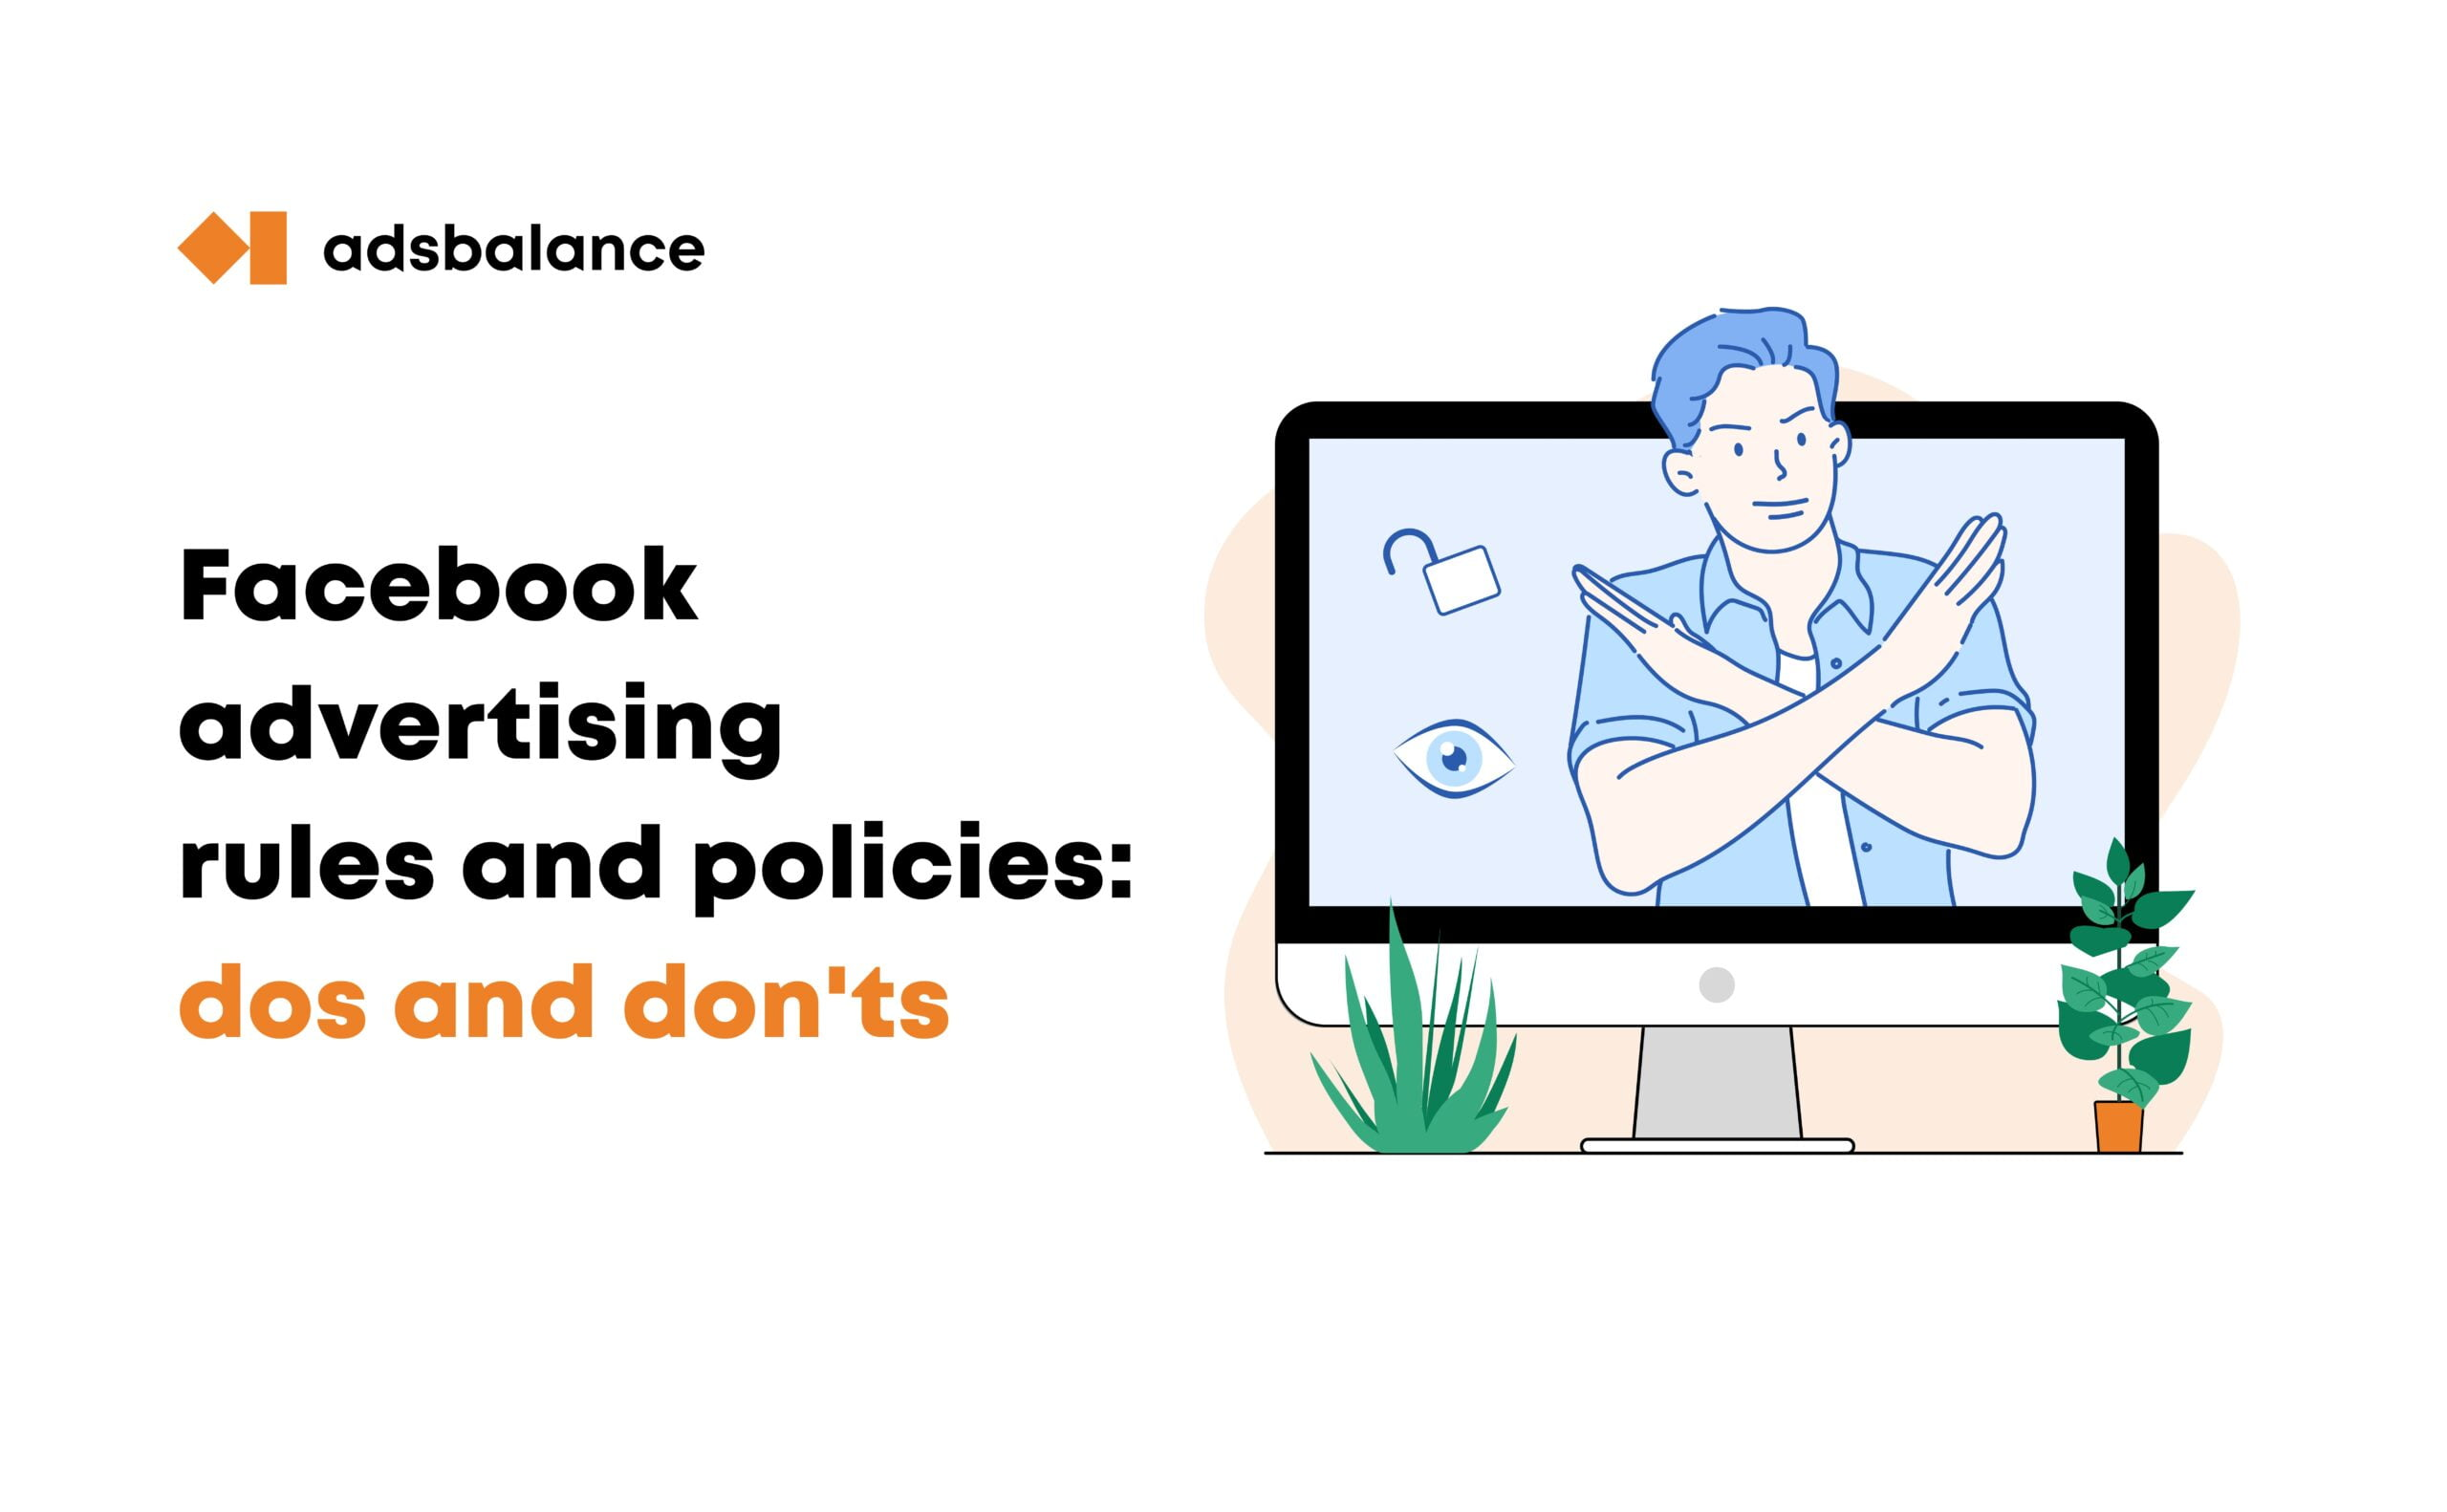 What are the rules for Facebook advertising?